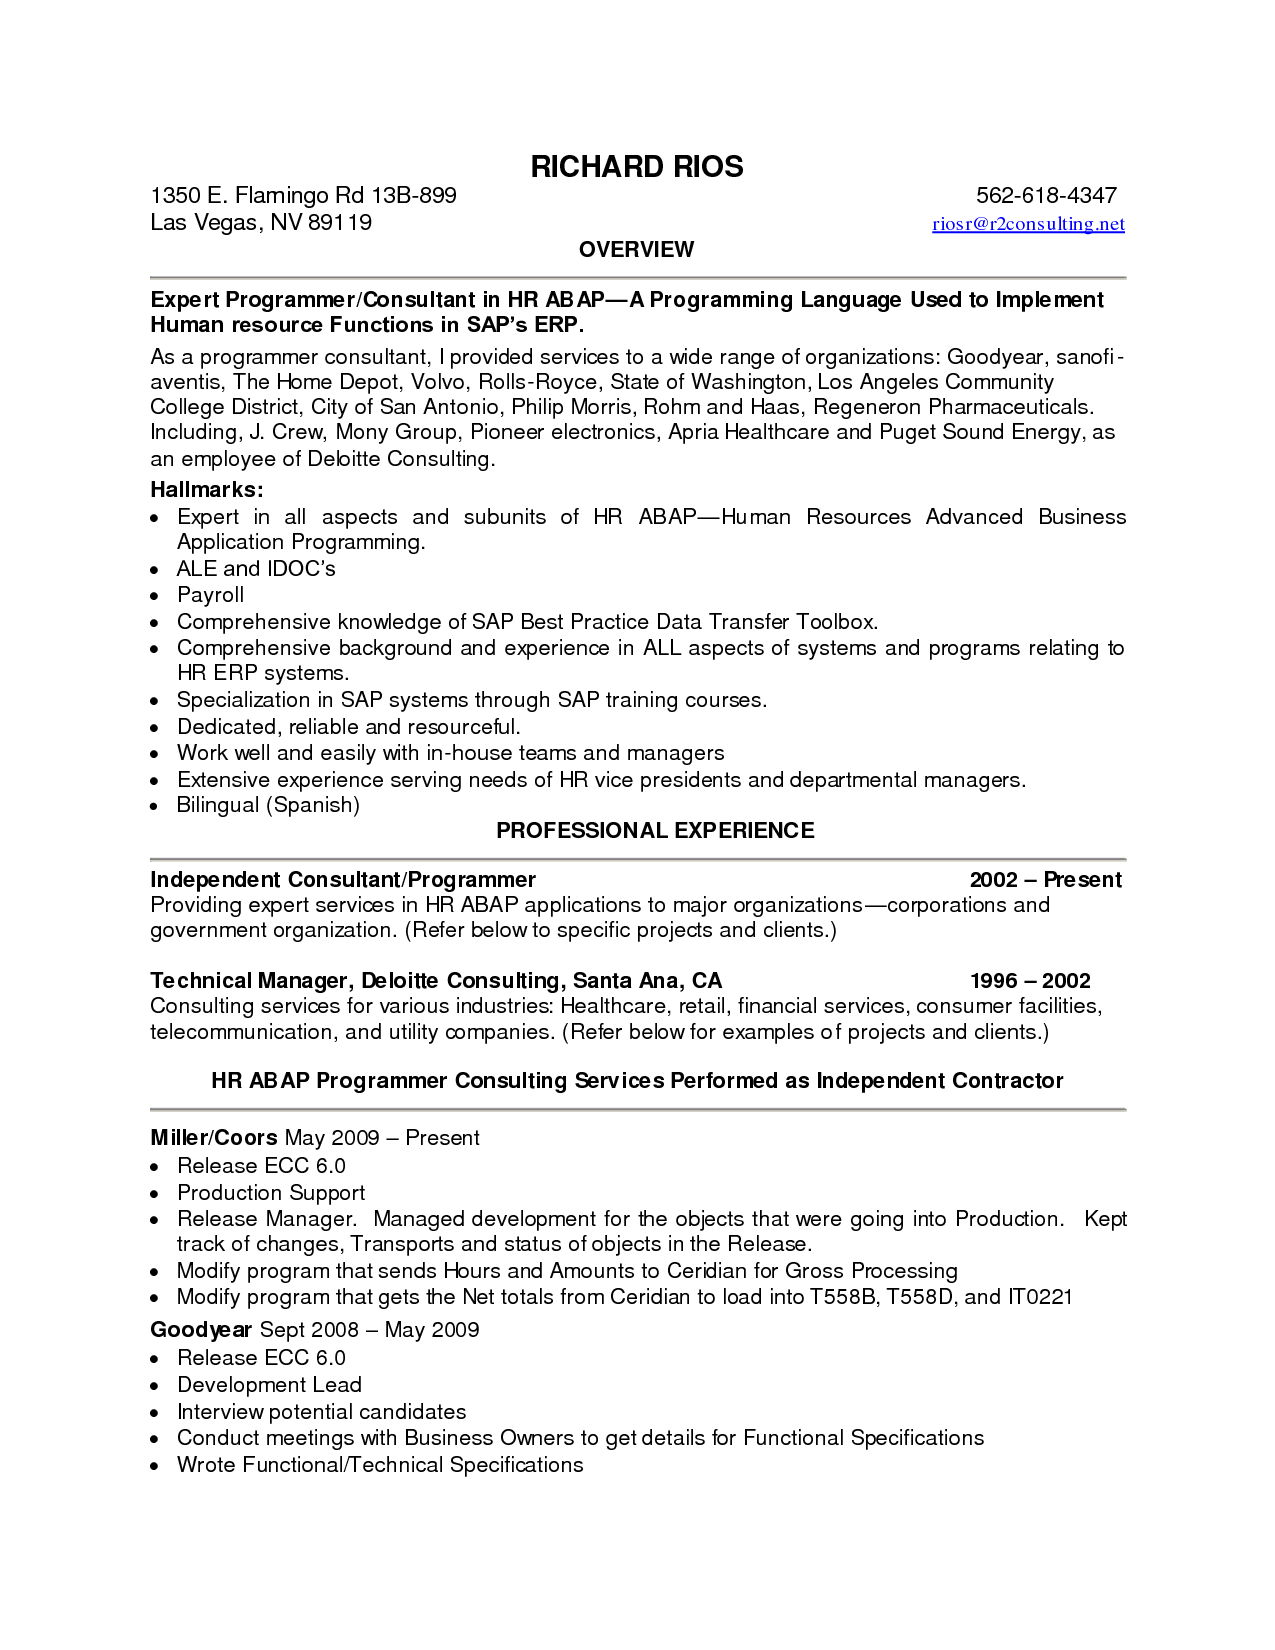 Best Summary of Qualifications Resume for 2016  SampleBusinessResume.com : SampleBusinessResume.com